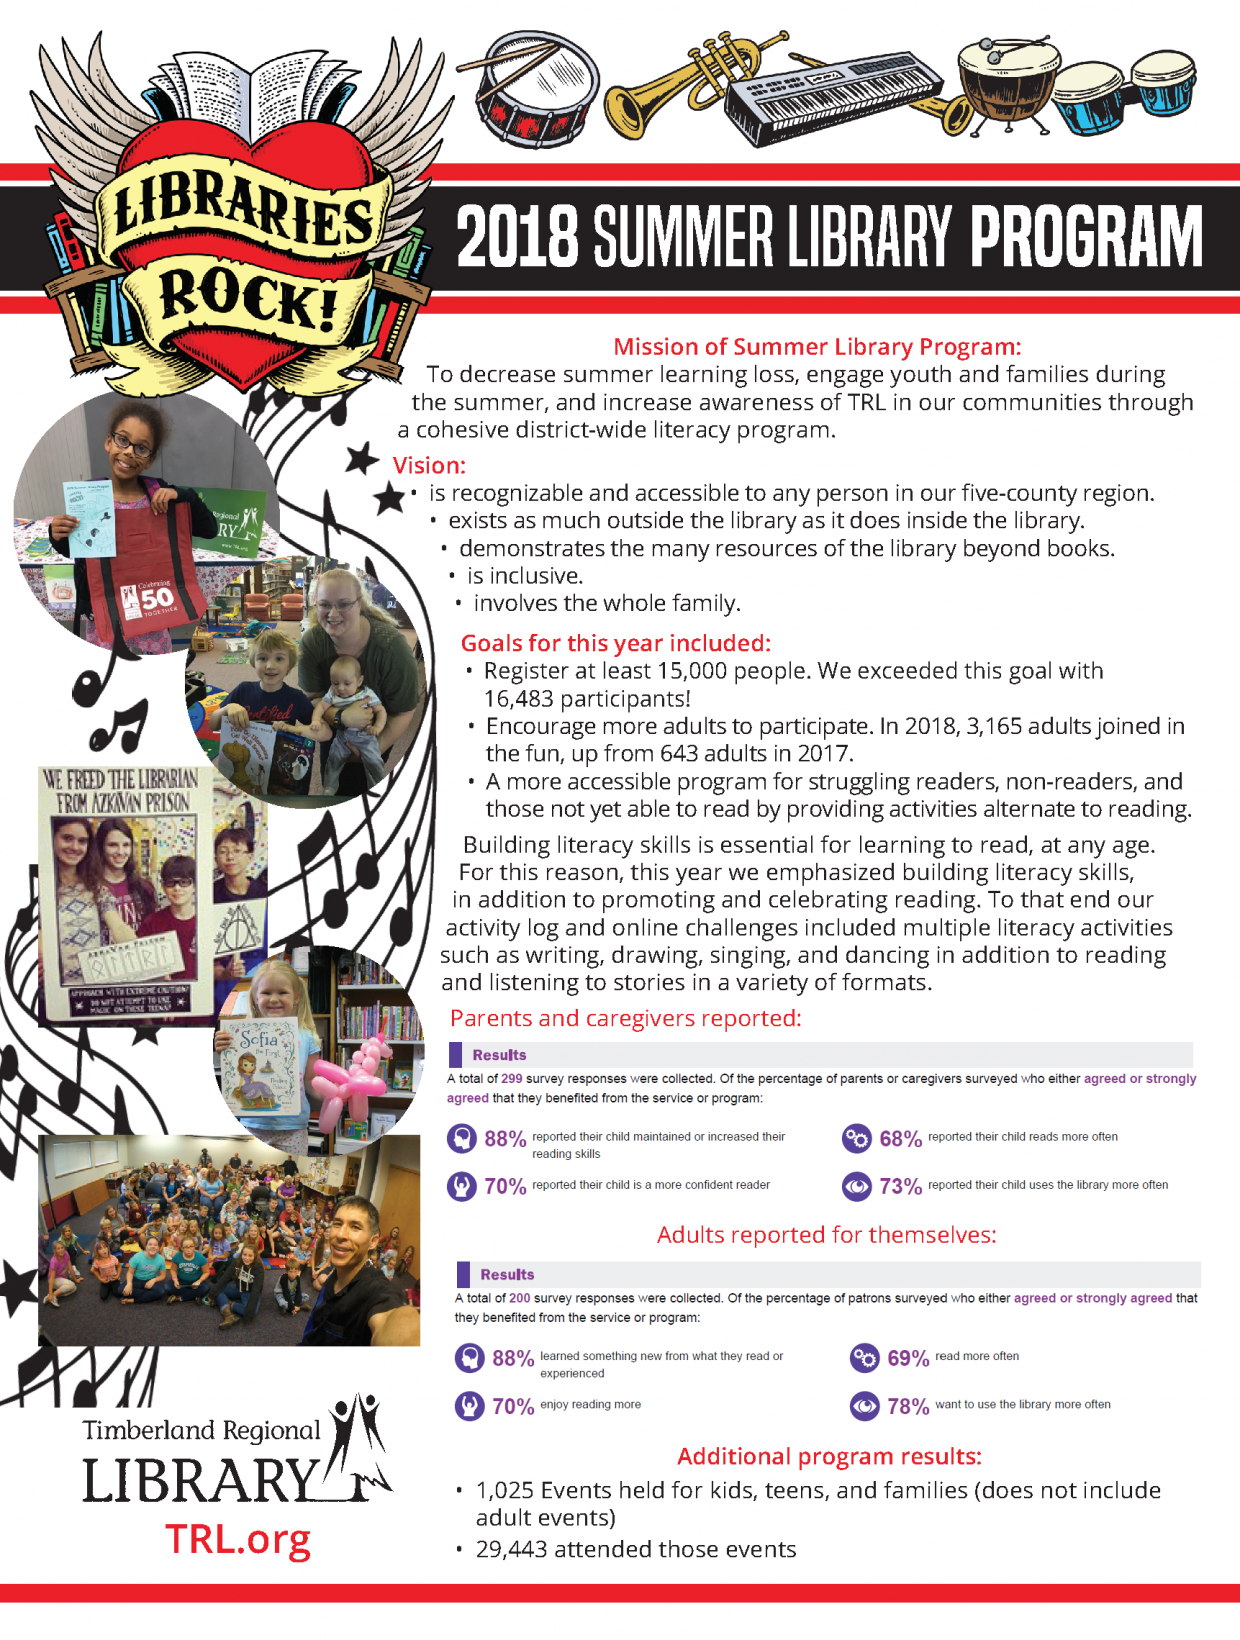 2018 Summer Library Program Statistics